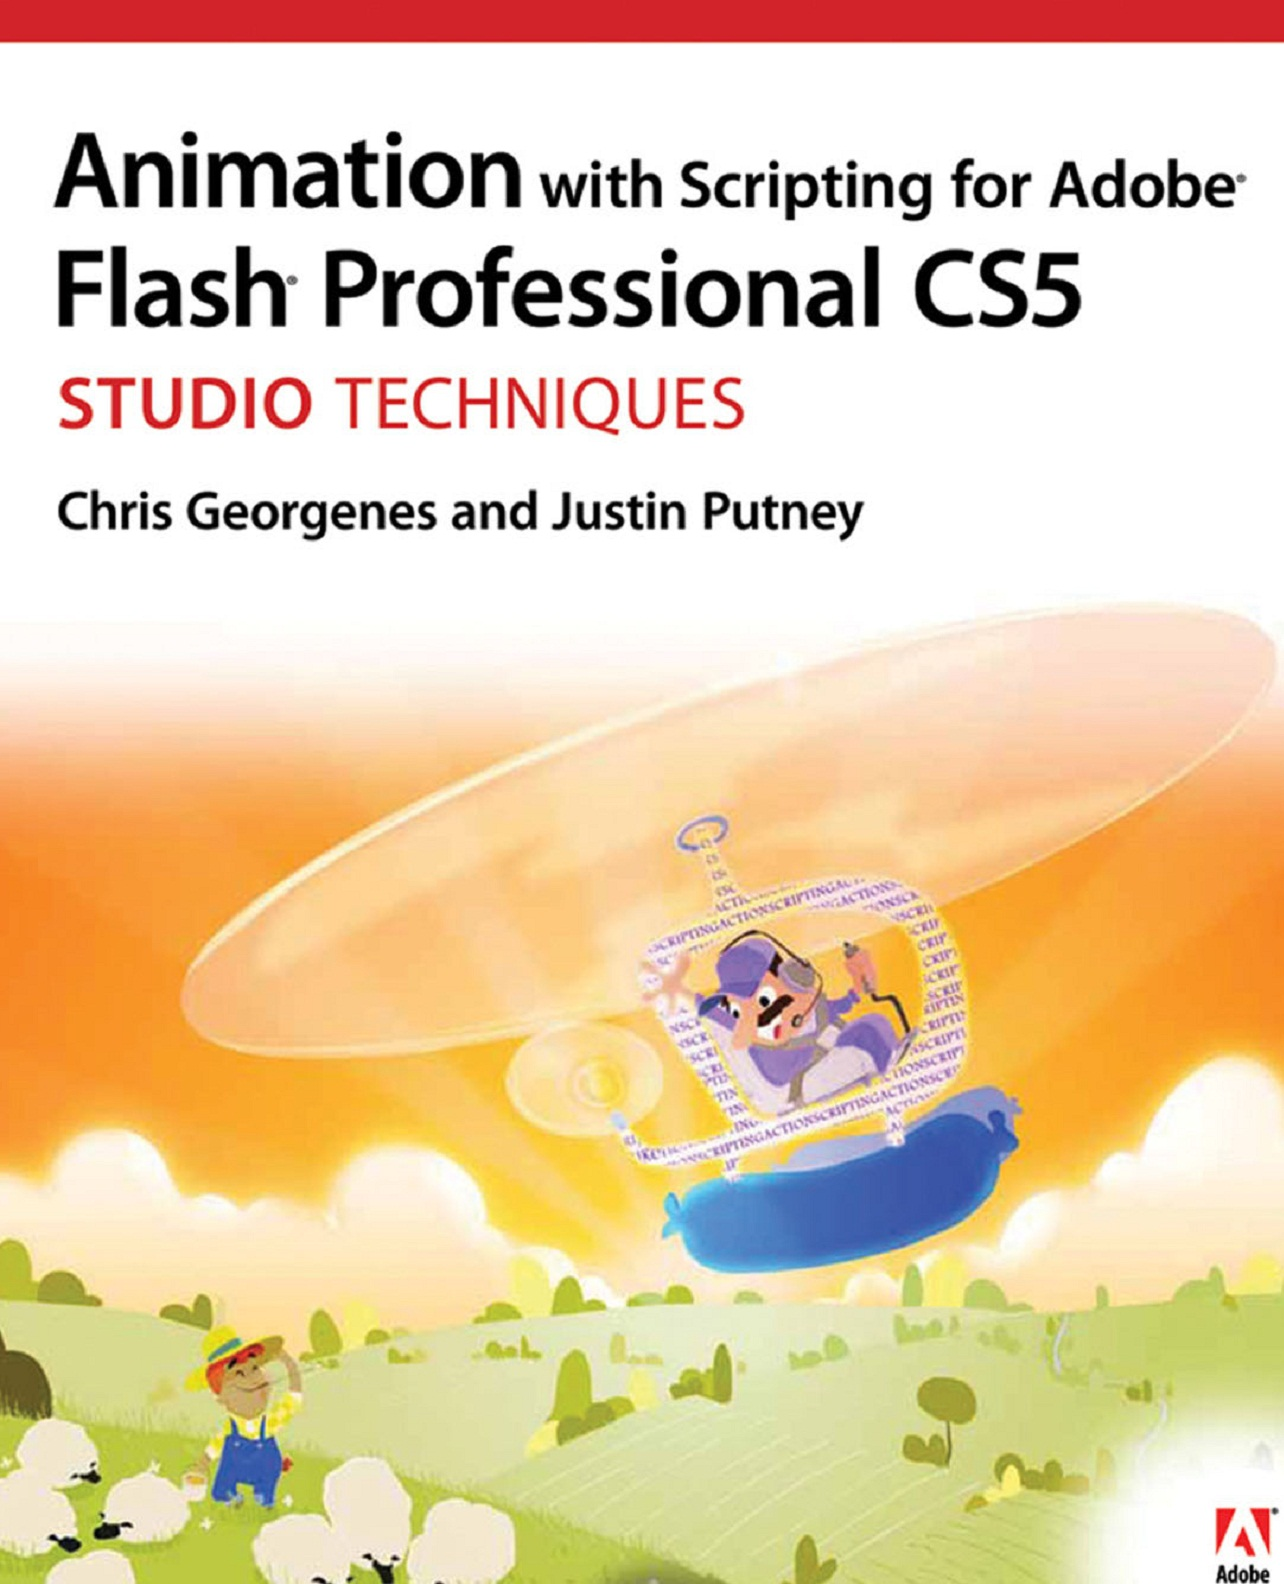 [EBOOK]Animation with Scripting for Adobe Flash Professional CS5